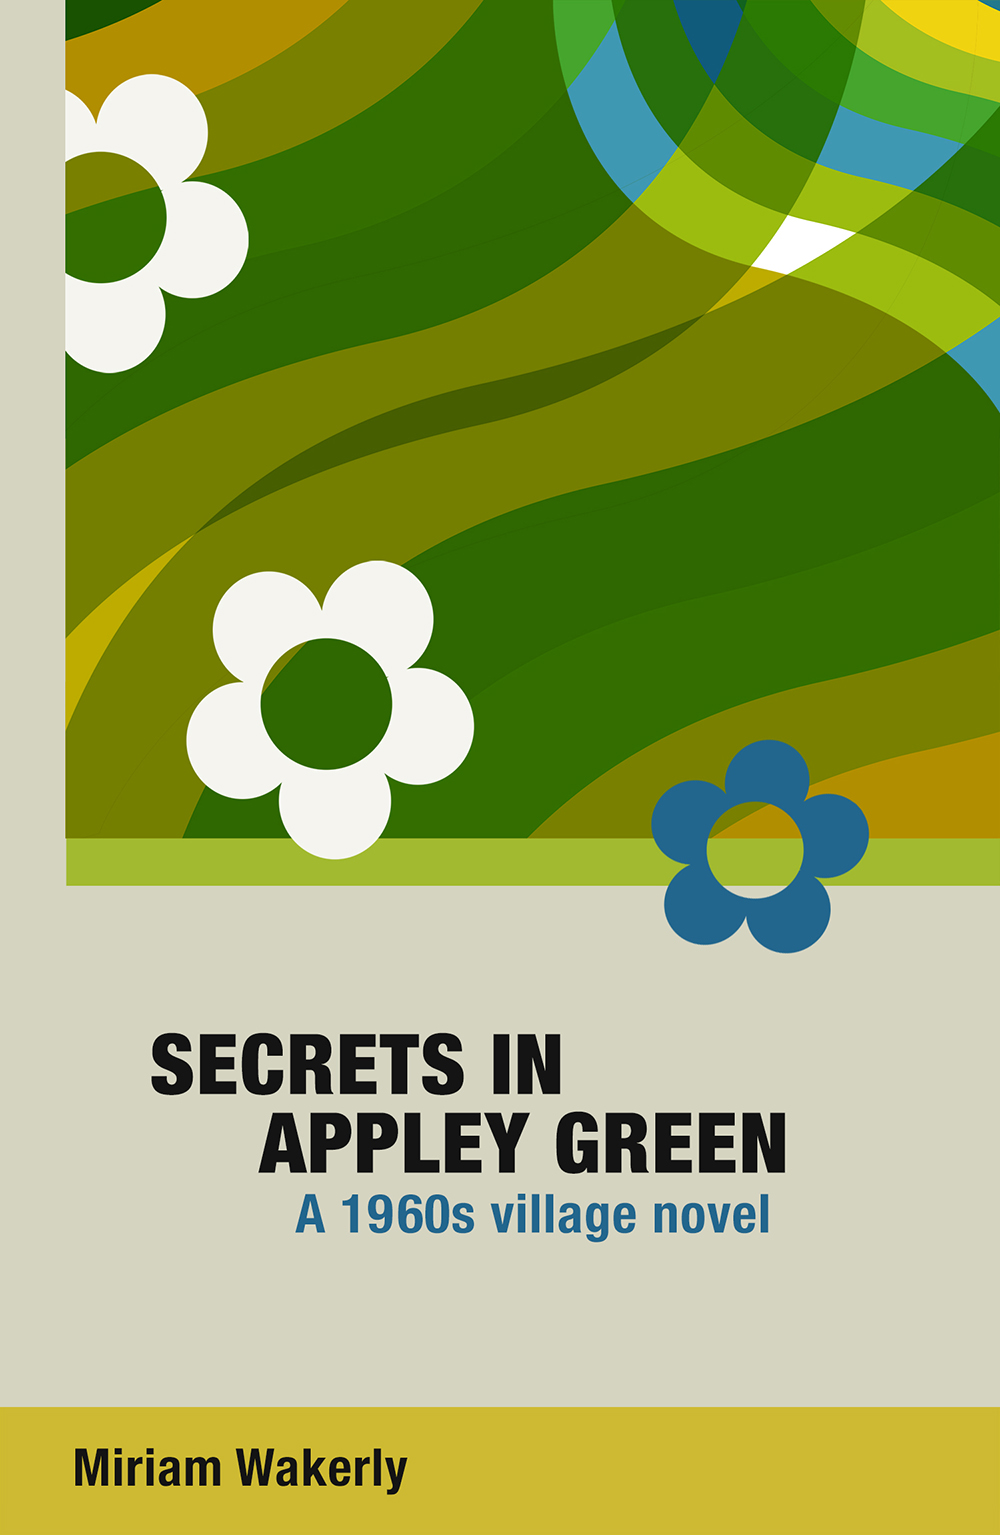 Secrets in Appley Green